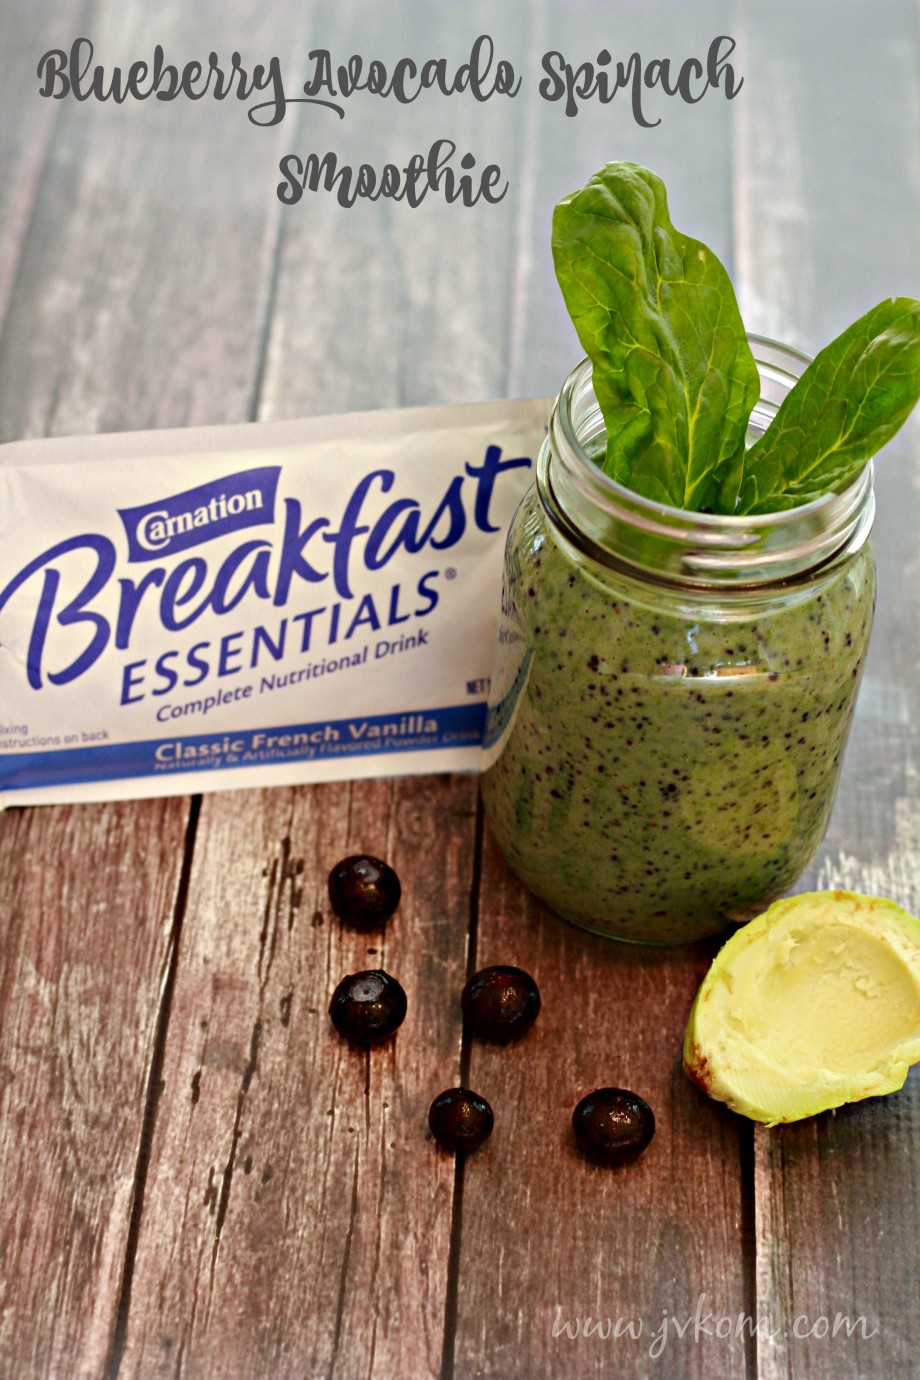 Blueberry Avocado Spinach Smoothie #CarnationSweepstakes #BetterBreakfast #CollectiveBias #ad